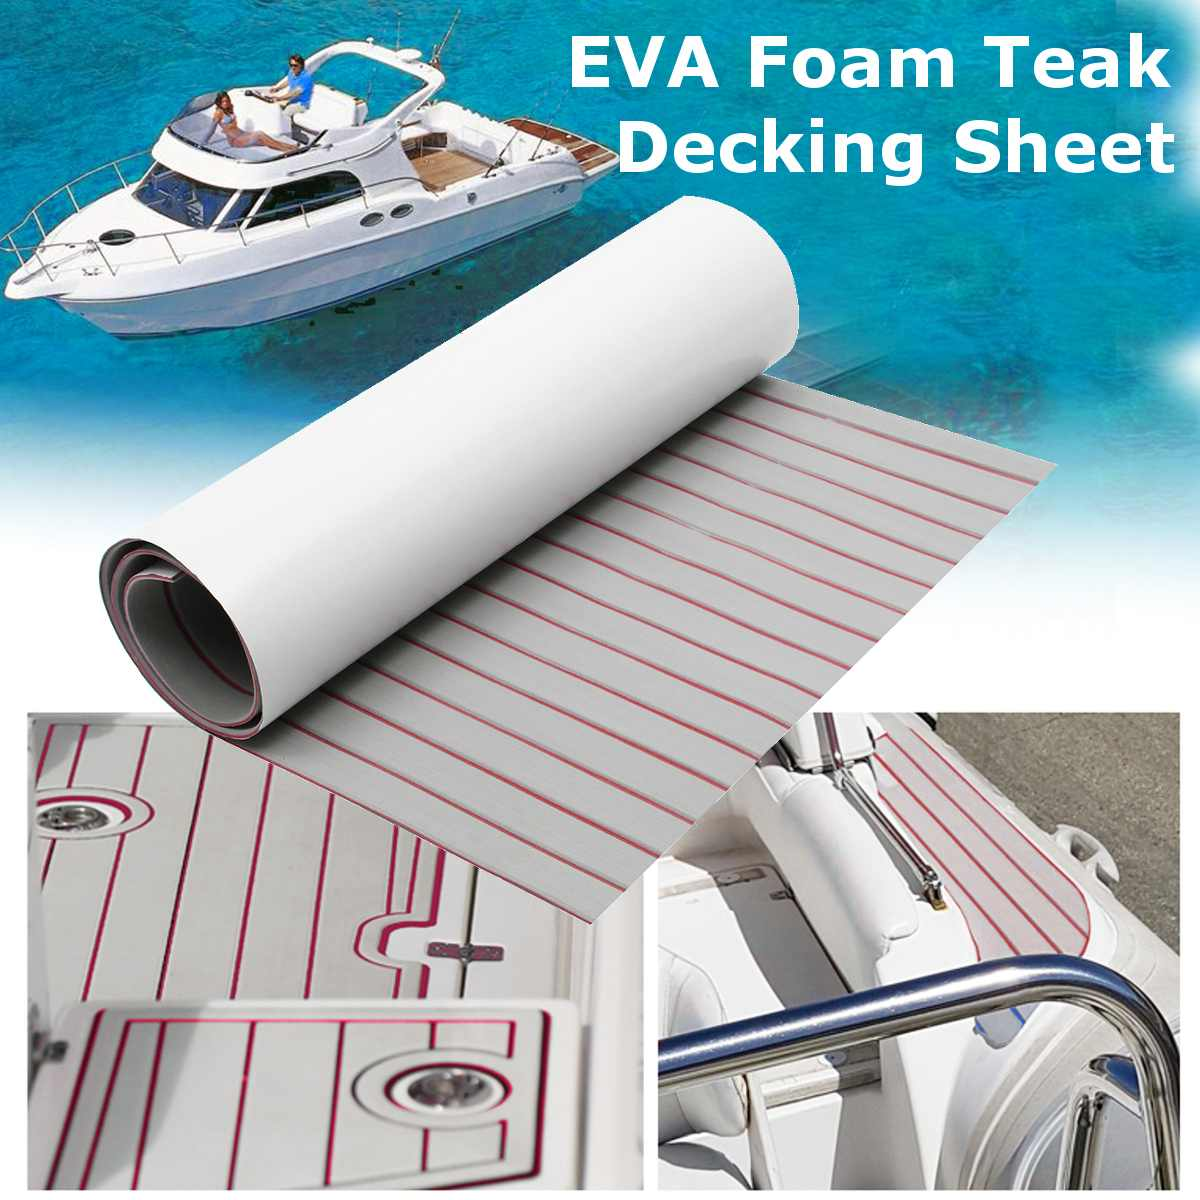 120x240cm Self-Adhesive Foam Teak Decking EVA Foam Marine Flooring Faux Boat Decking Sheet Accessories Marine